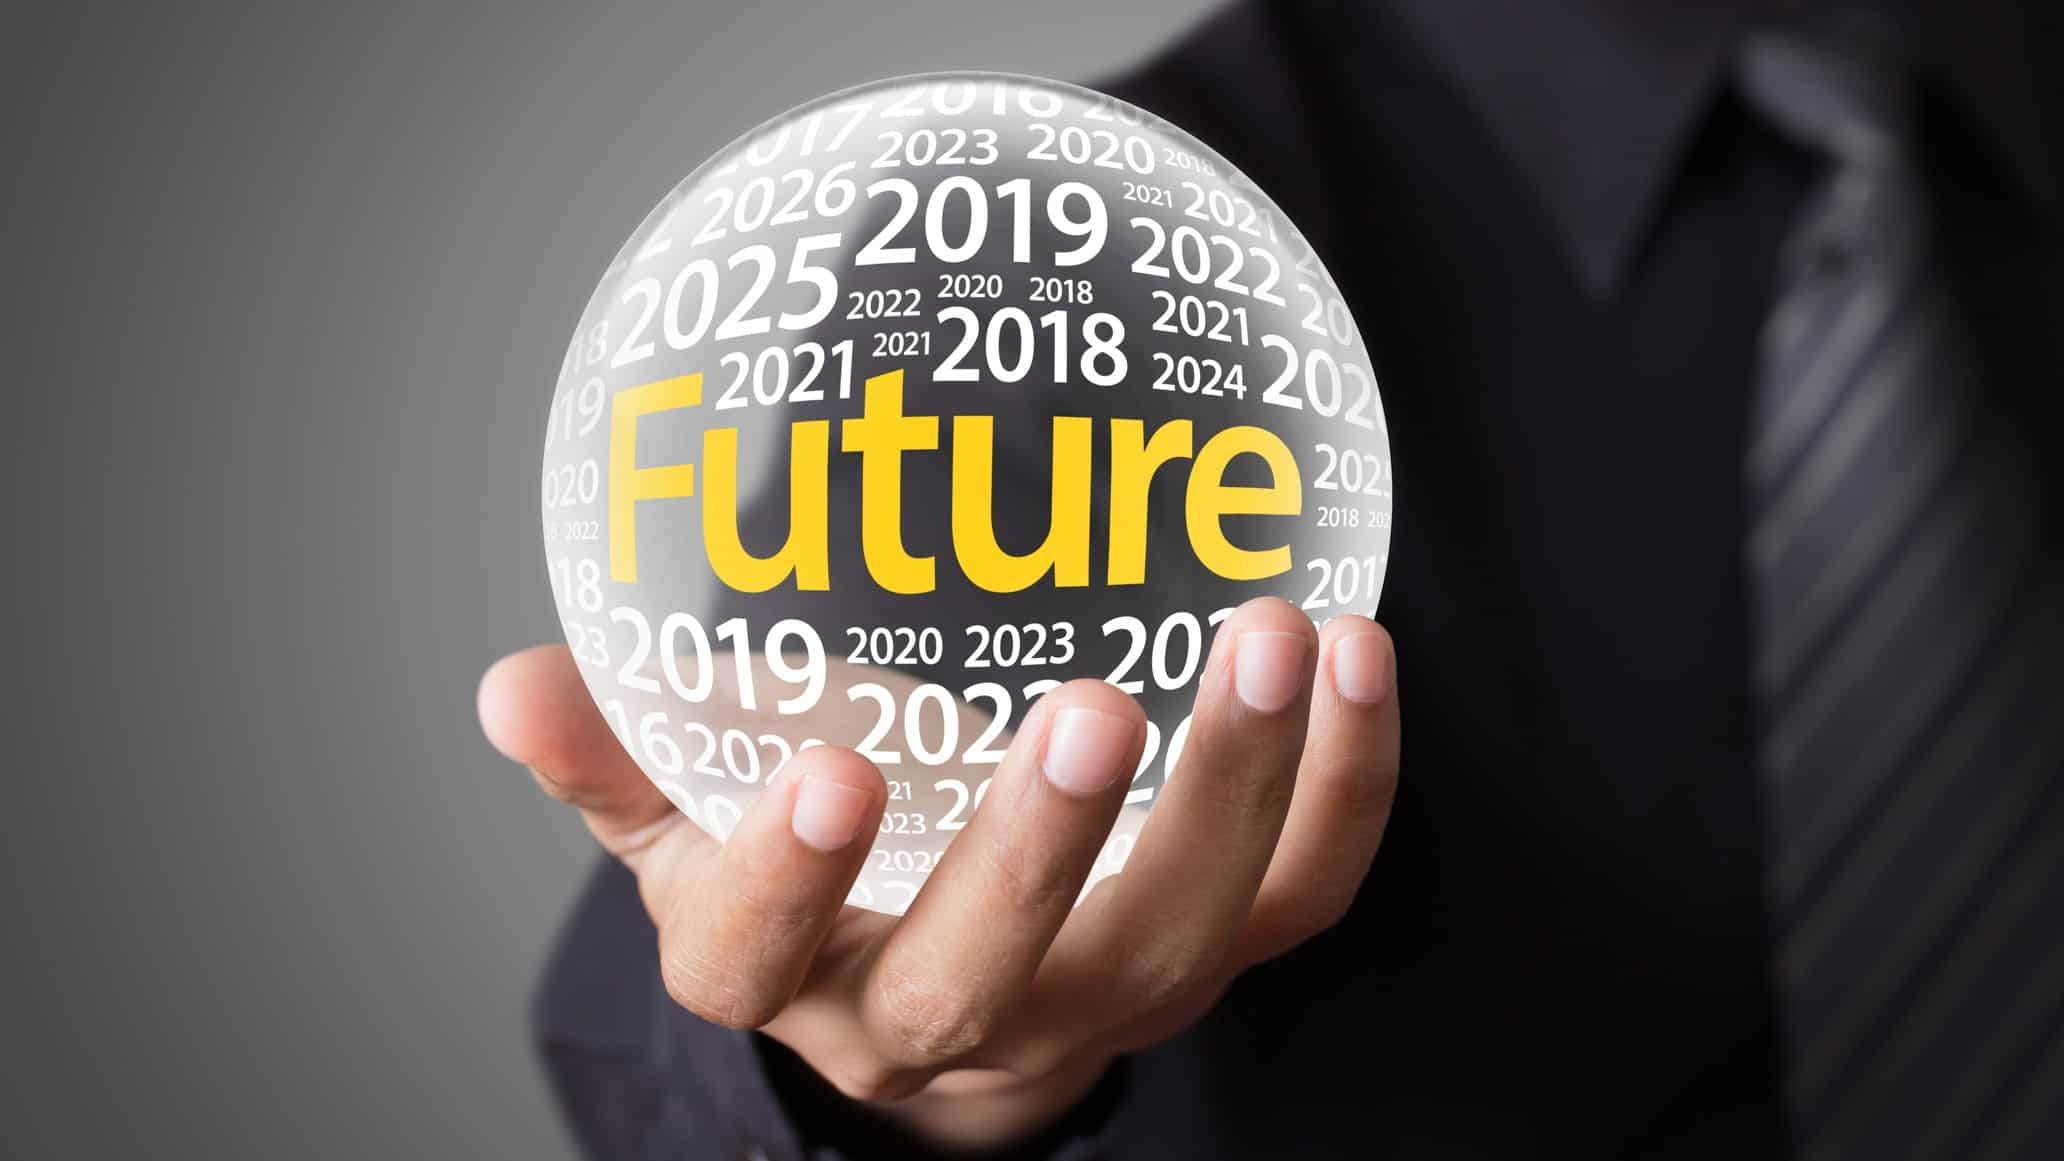 Business man holding a crystal ball containing the word future